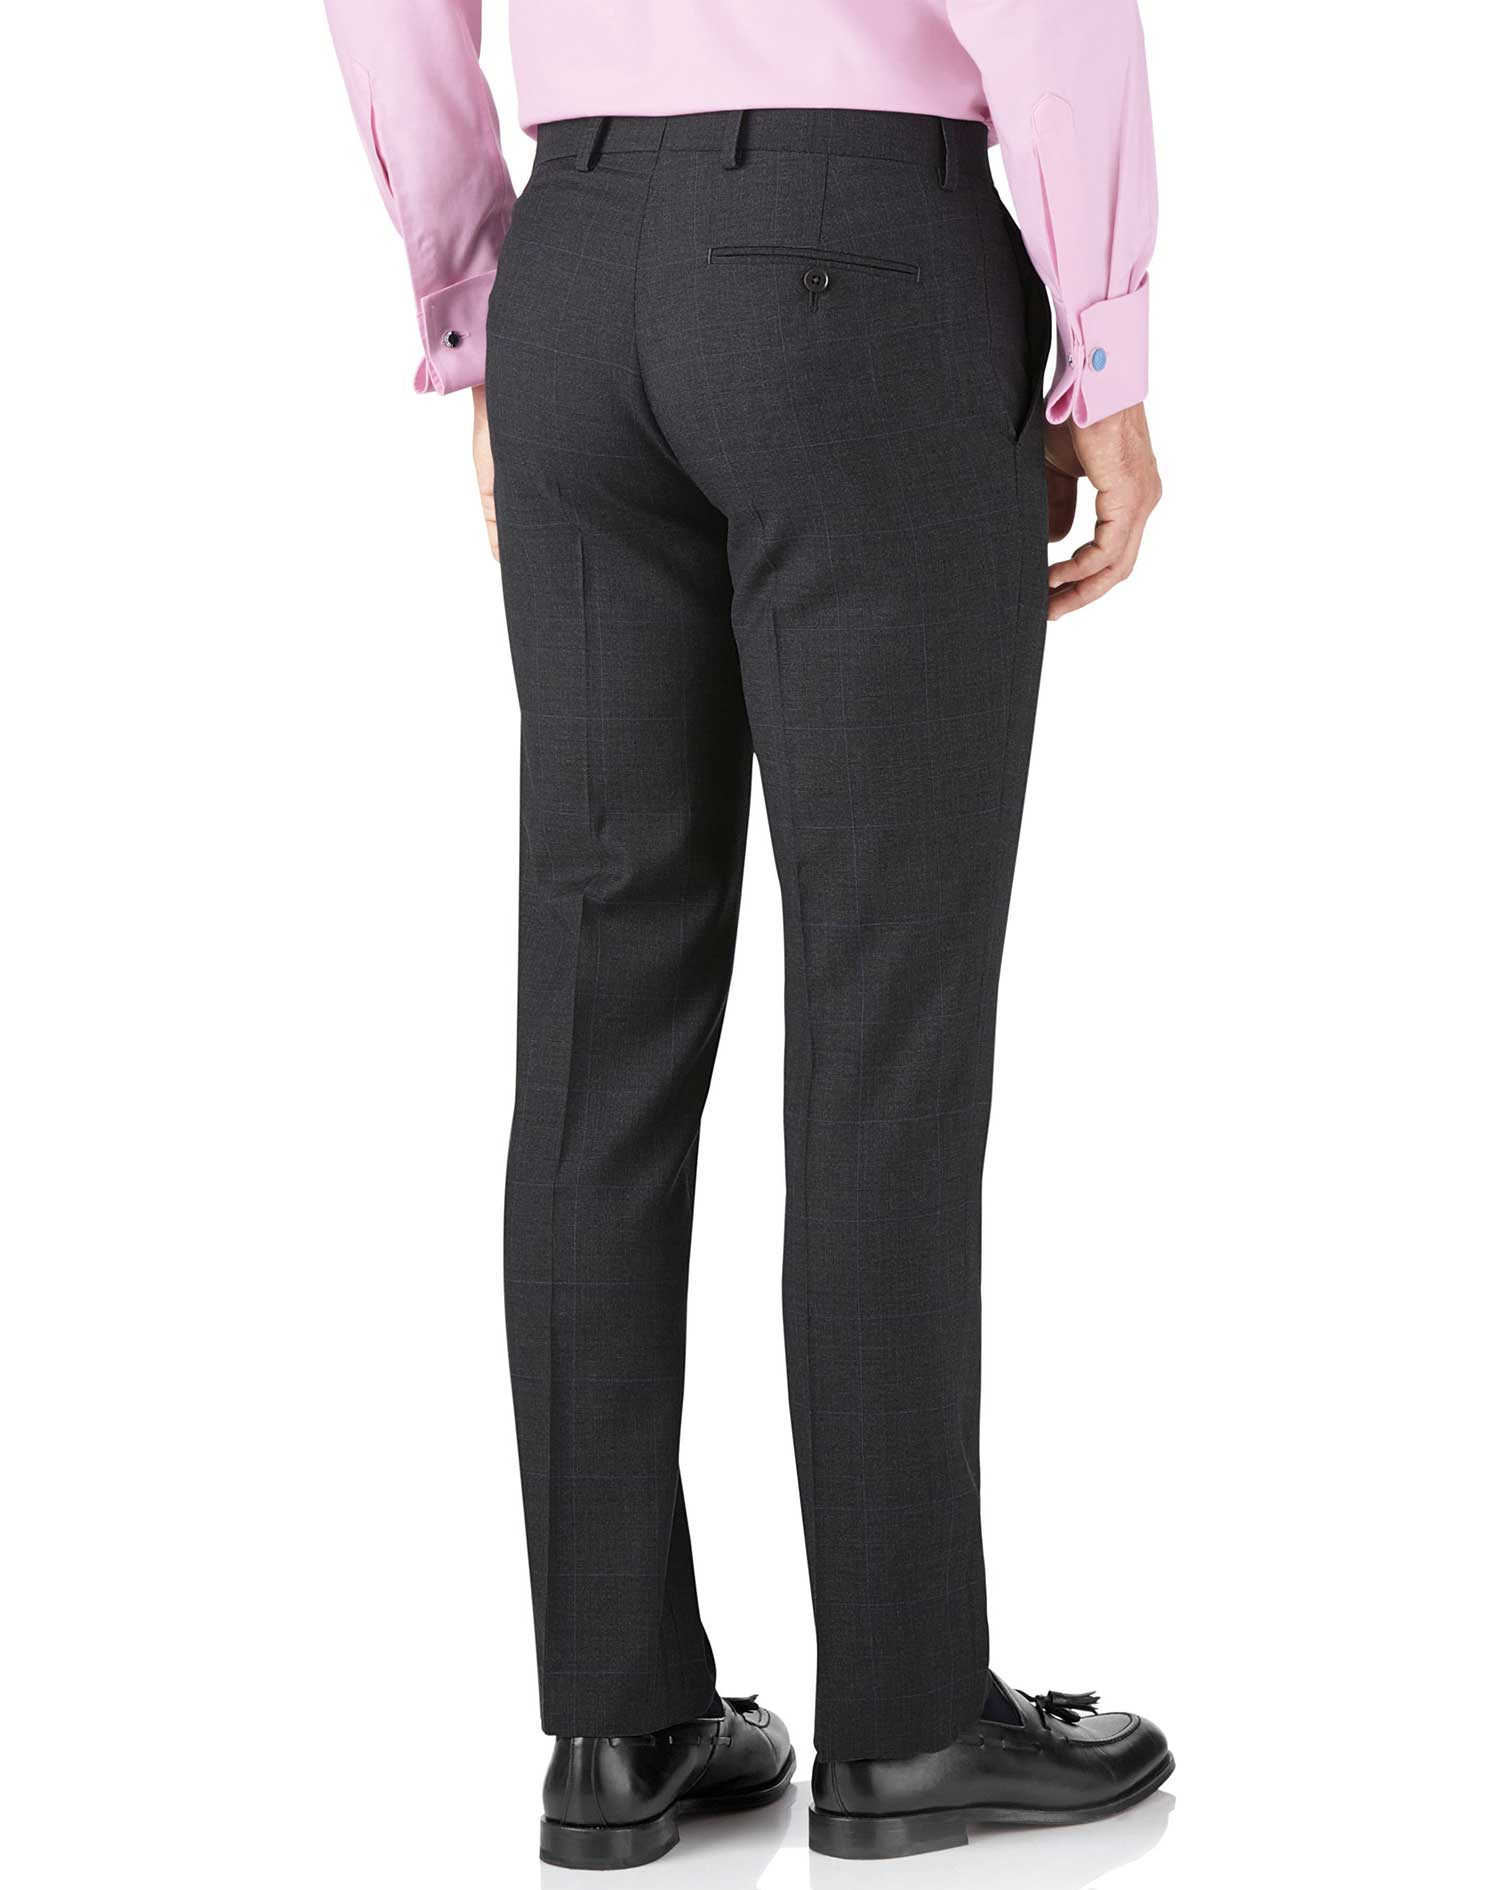 Charcoal slim fit sharkskin travel suit pants